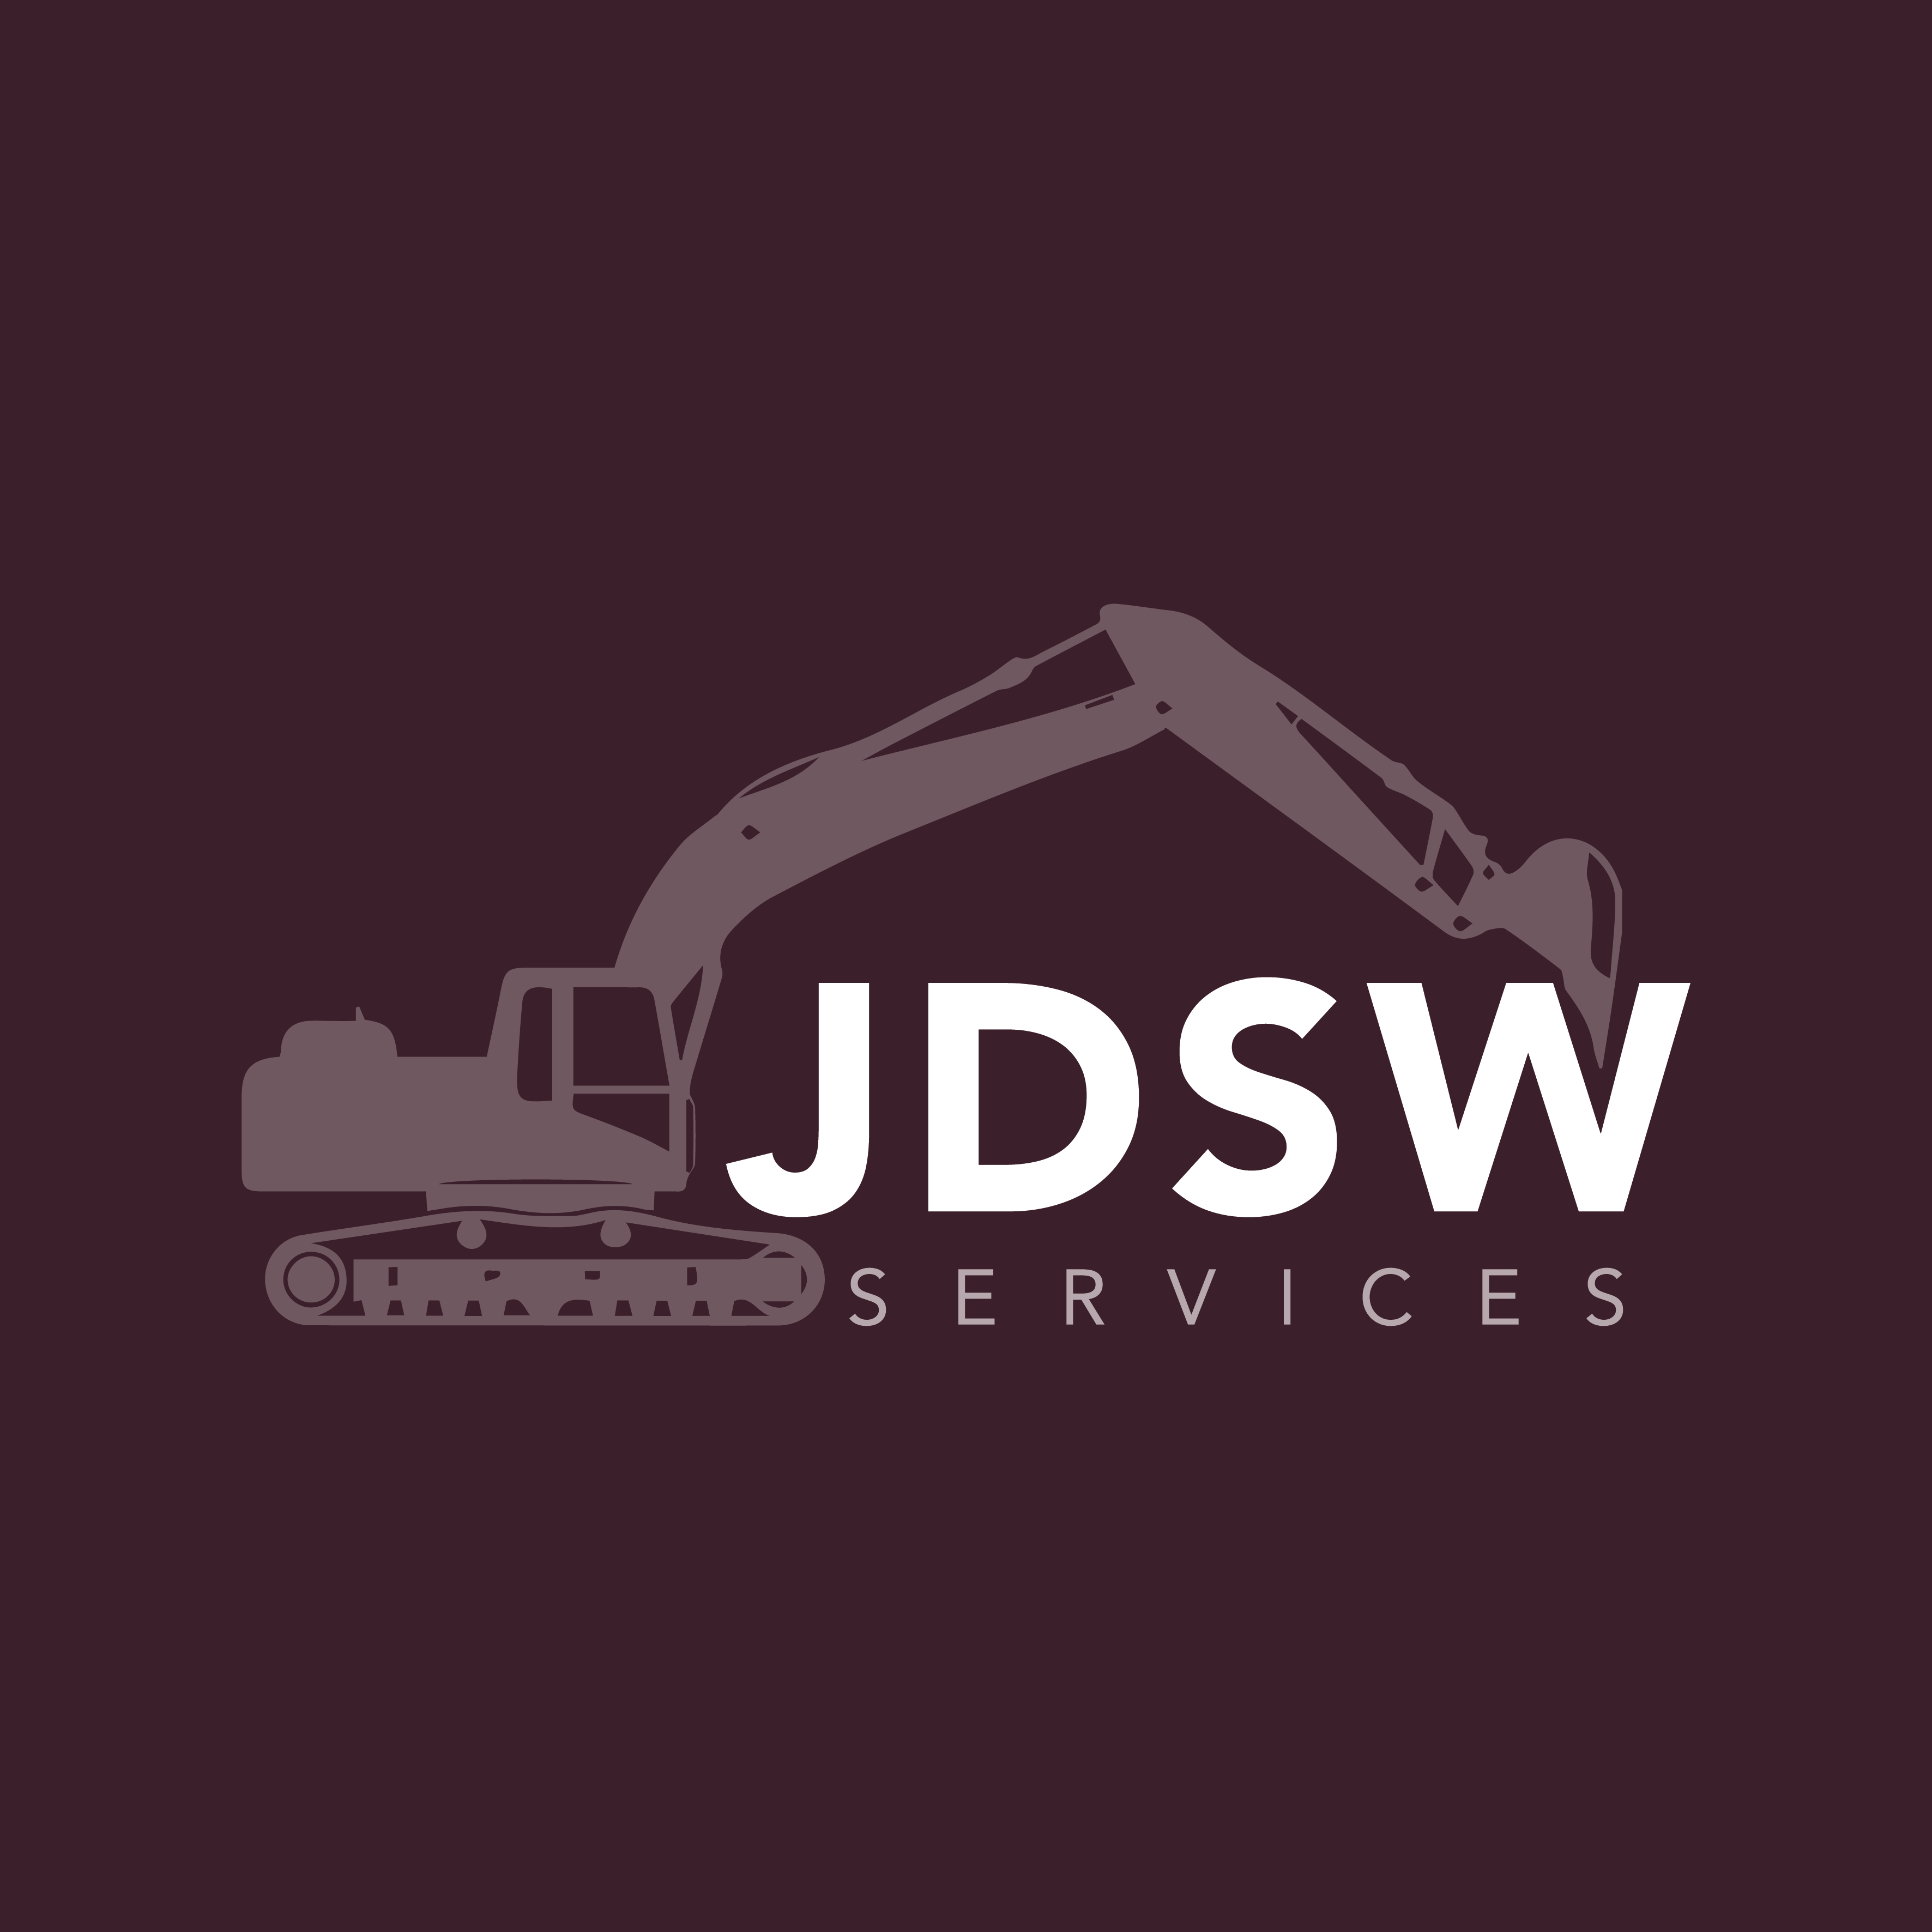 JDSW Services